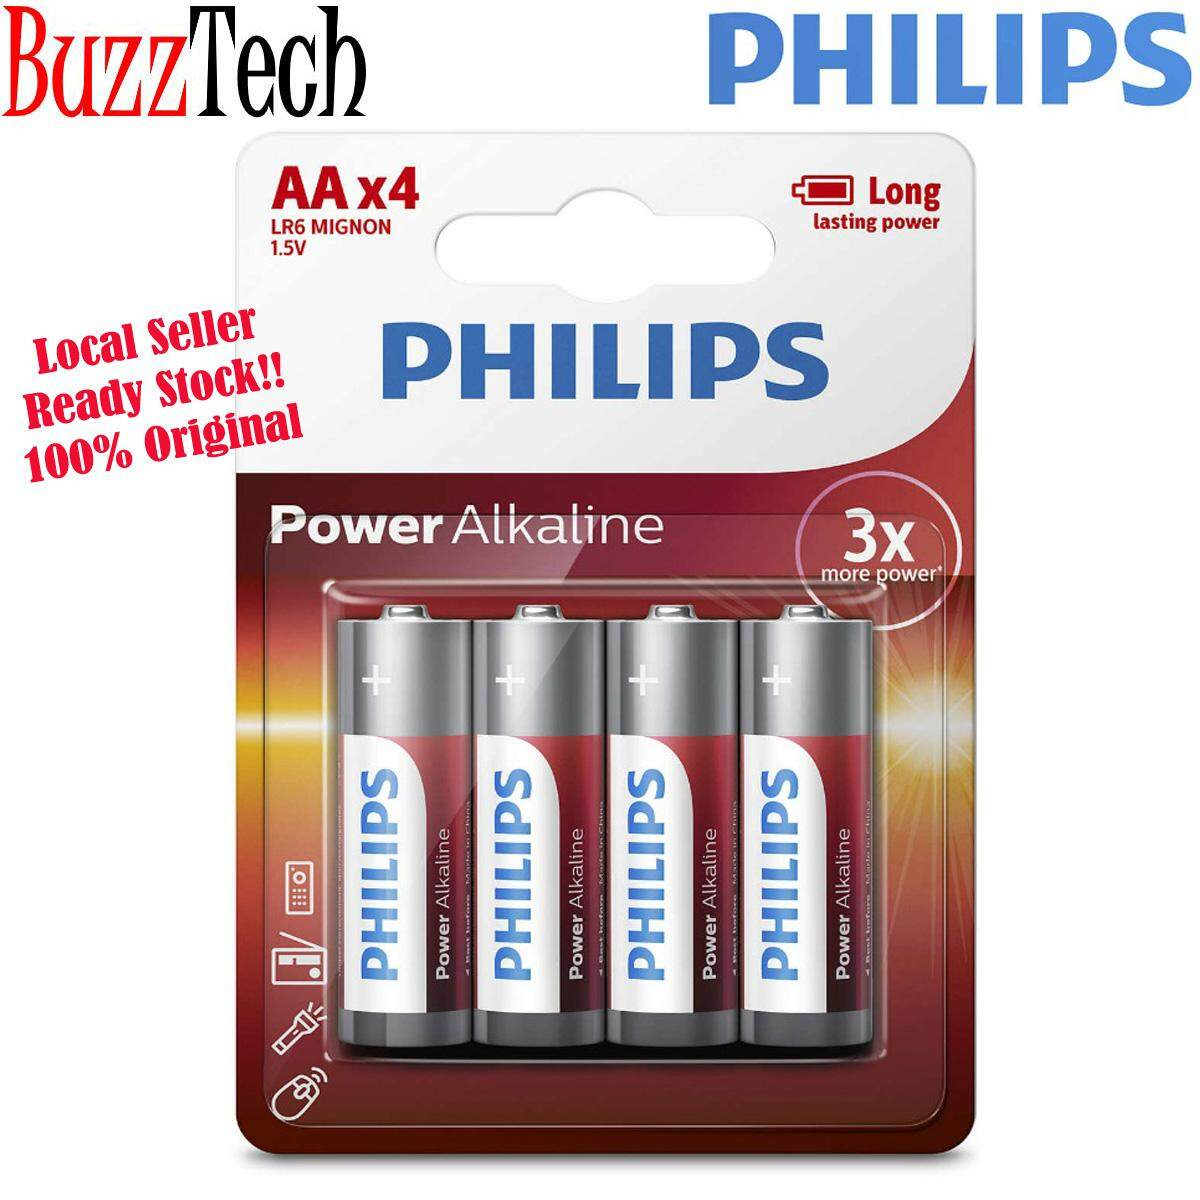 BuzzTech Philips Alkaline Batteries AA / AAA / C / D / 9V Long Lasting Power High Performance Alkaline Battery (Authorised Reseller)